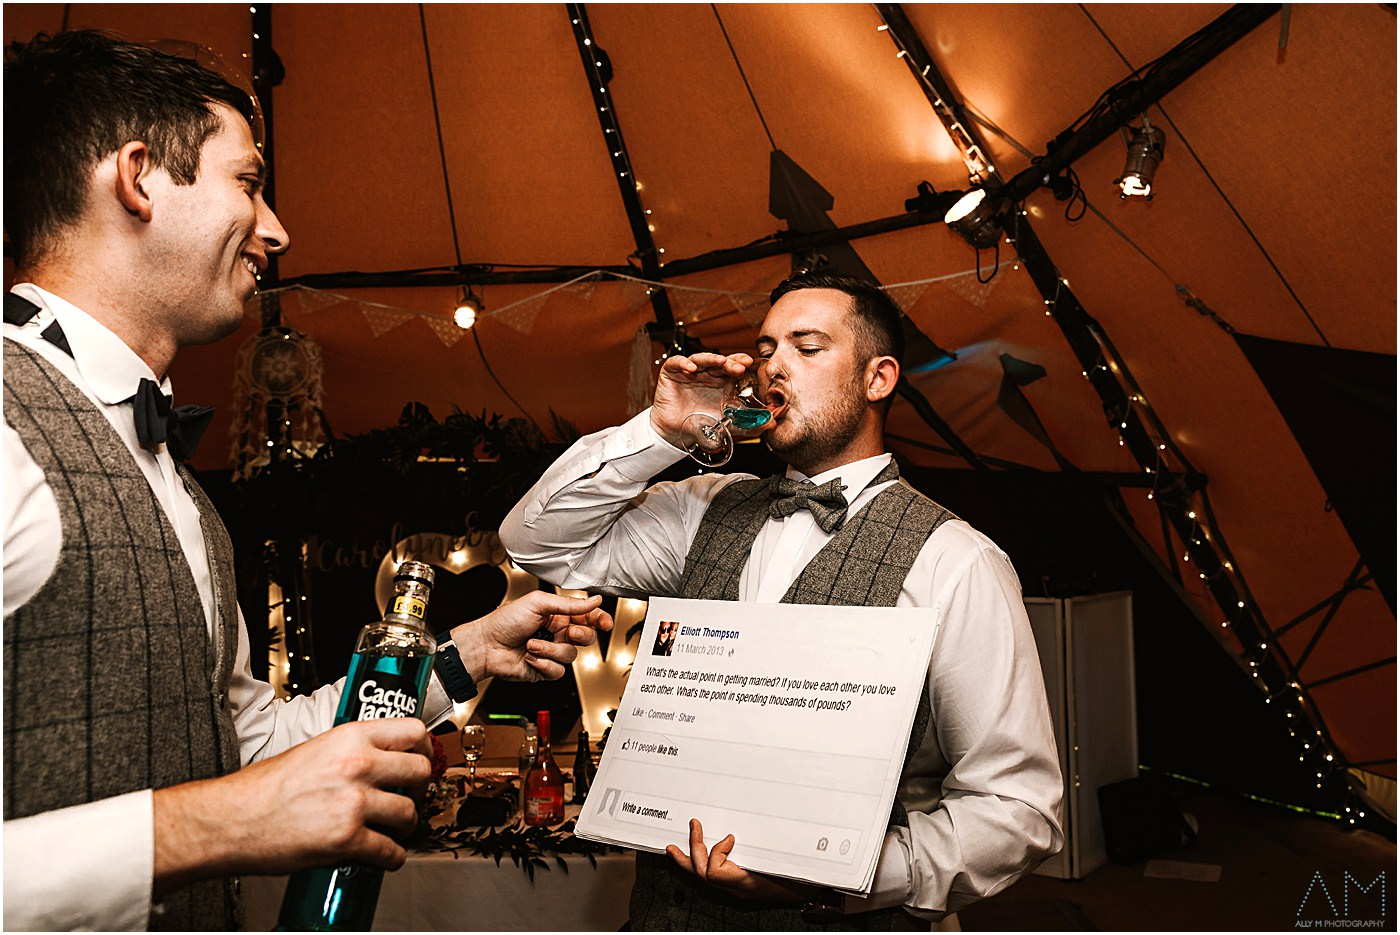 Groom drinking a shot